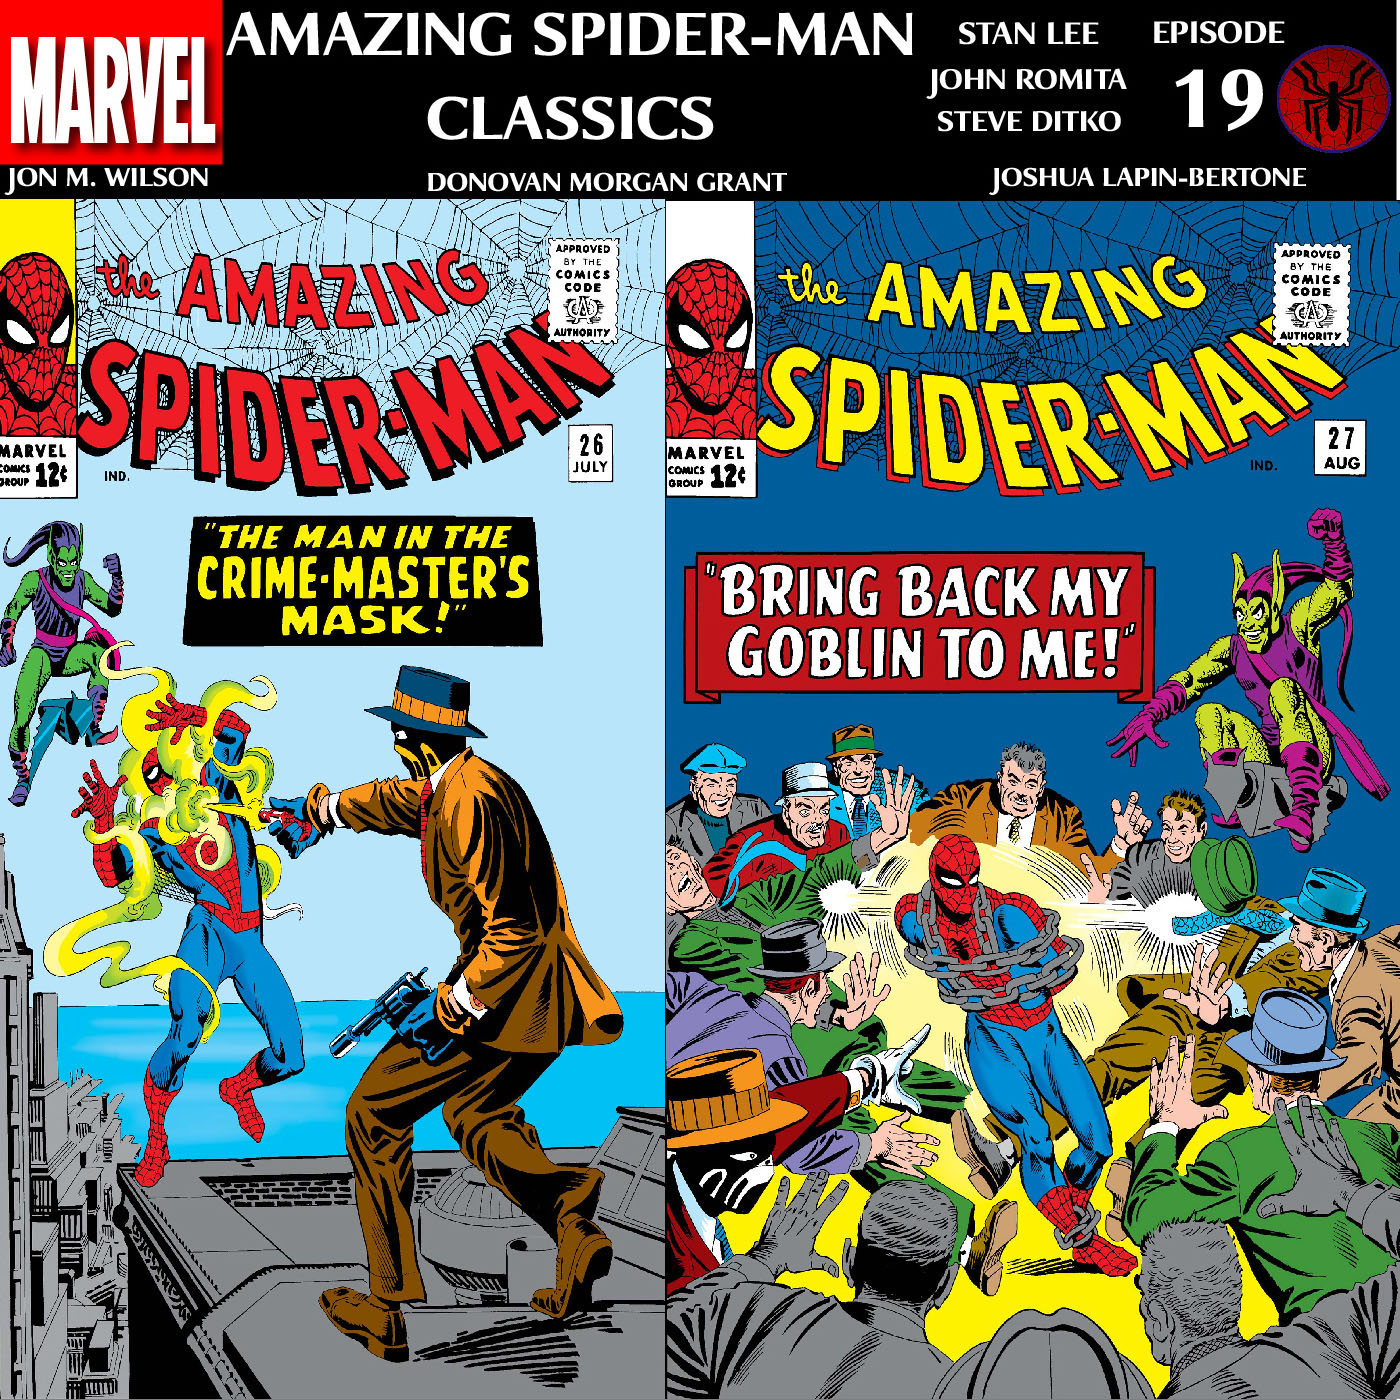 ASM Classics Episode 19: Amazing Spider-Man 26 and 27